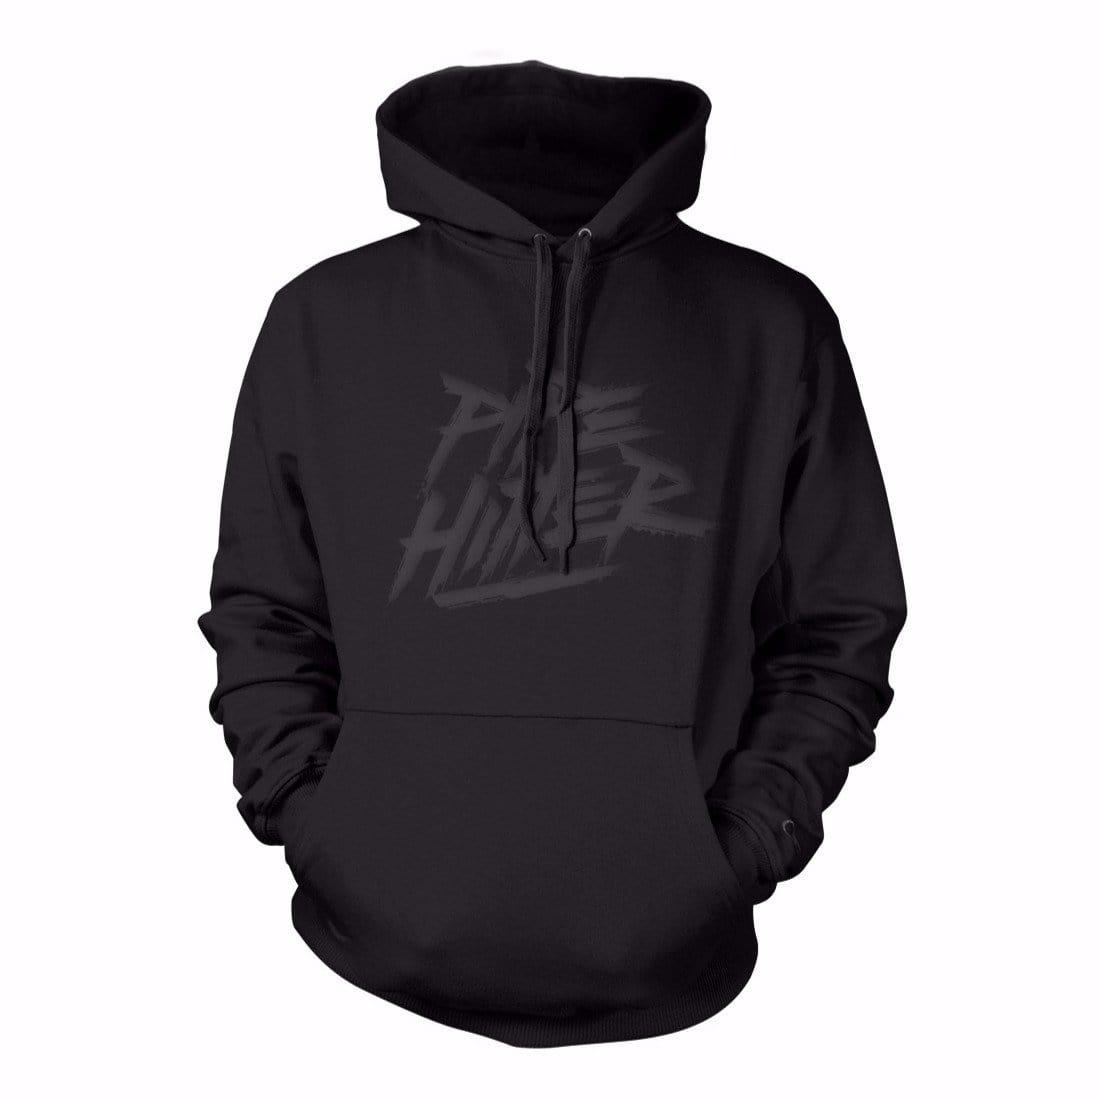 Pipe Hitter Hoodie - Pipe Hitters Union